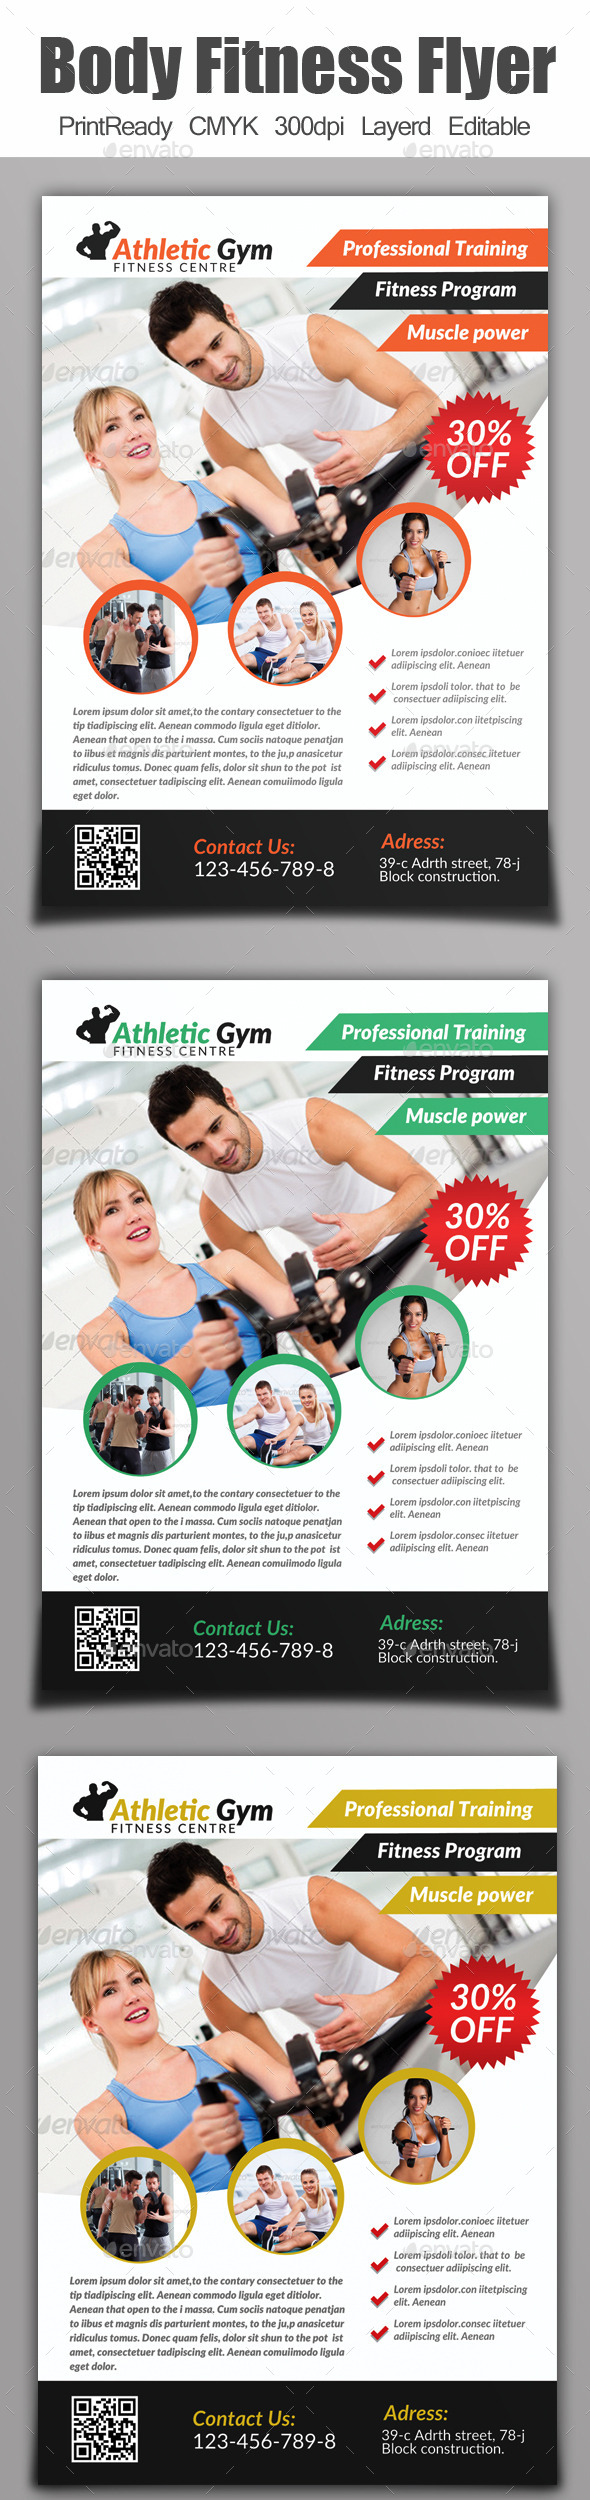 GraphicRiver A4 Body Fitness Flyer 9154233